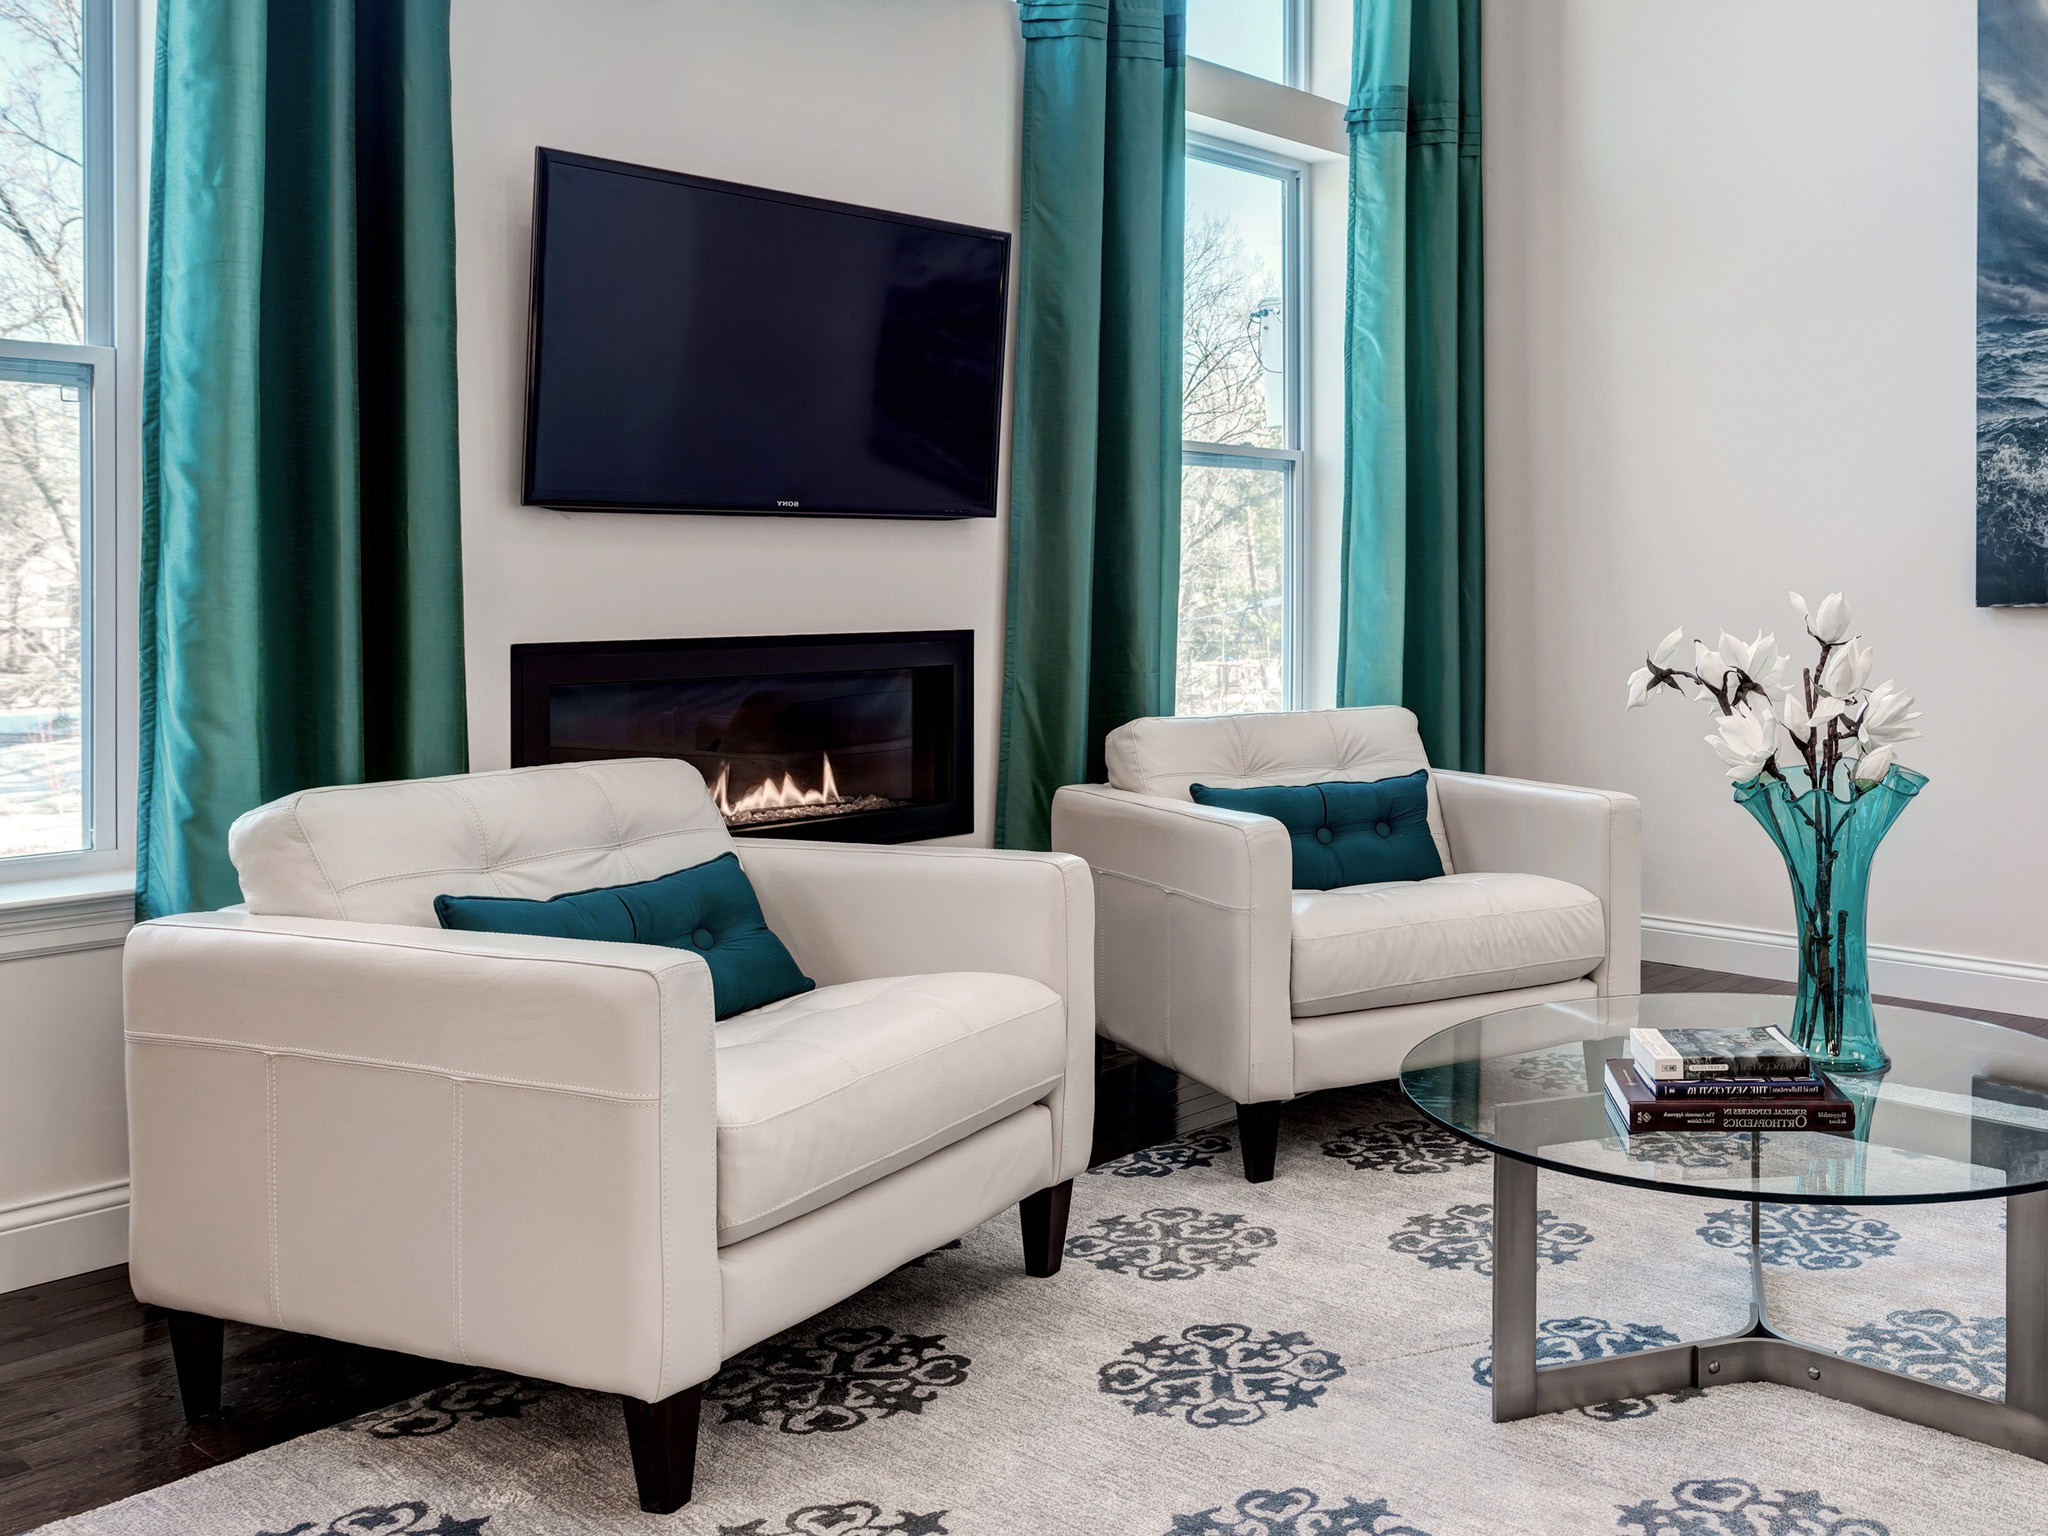 Modern Comfy White Leather Chairs For Living Room Furniture (Image 14 of 24)